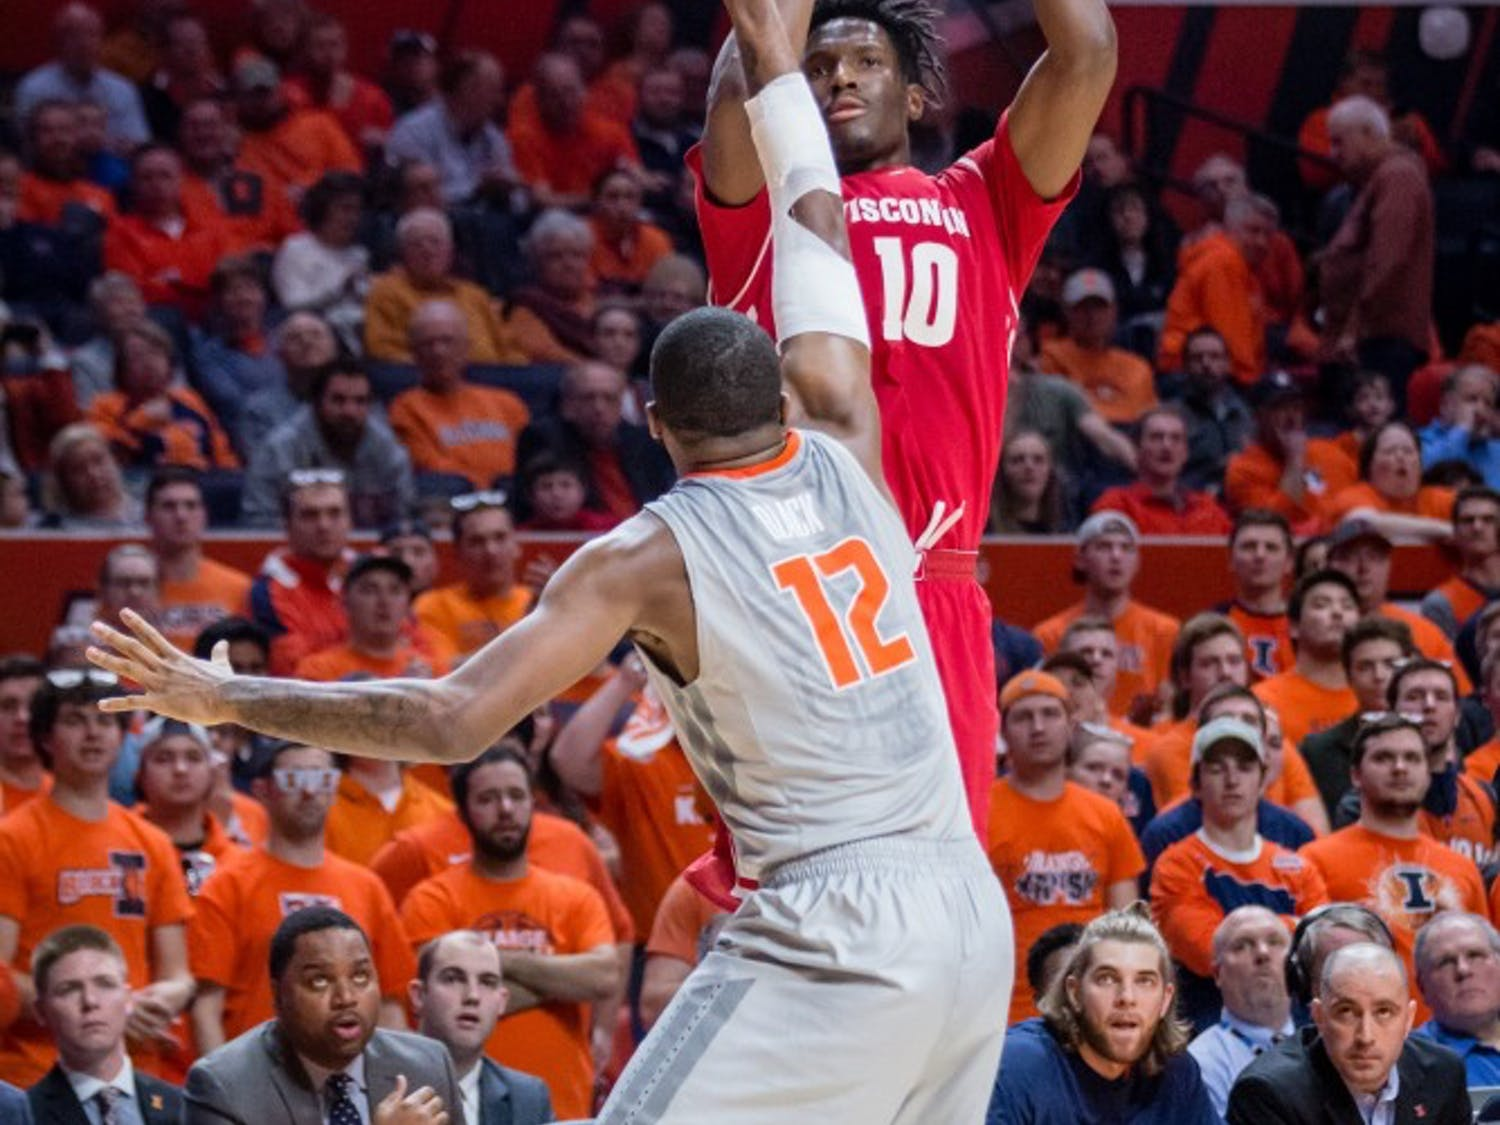 Wisconsin's Nigel Hayes (10) shoots a three over Illinois' Leron Black (12) during the game at State Farm Center on Tuesday, January 31.